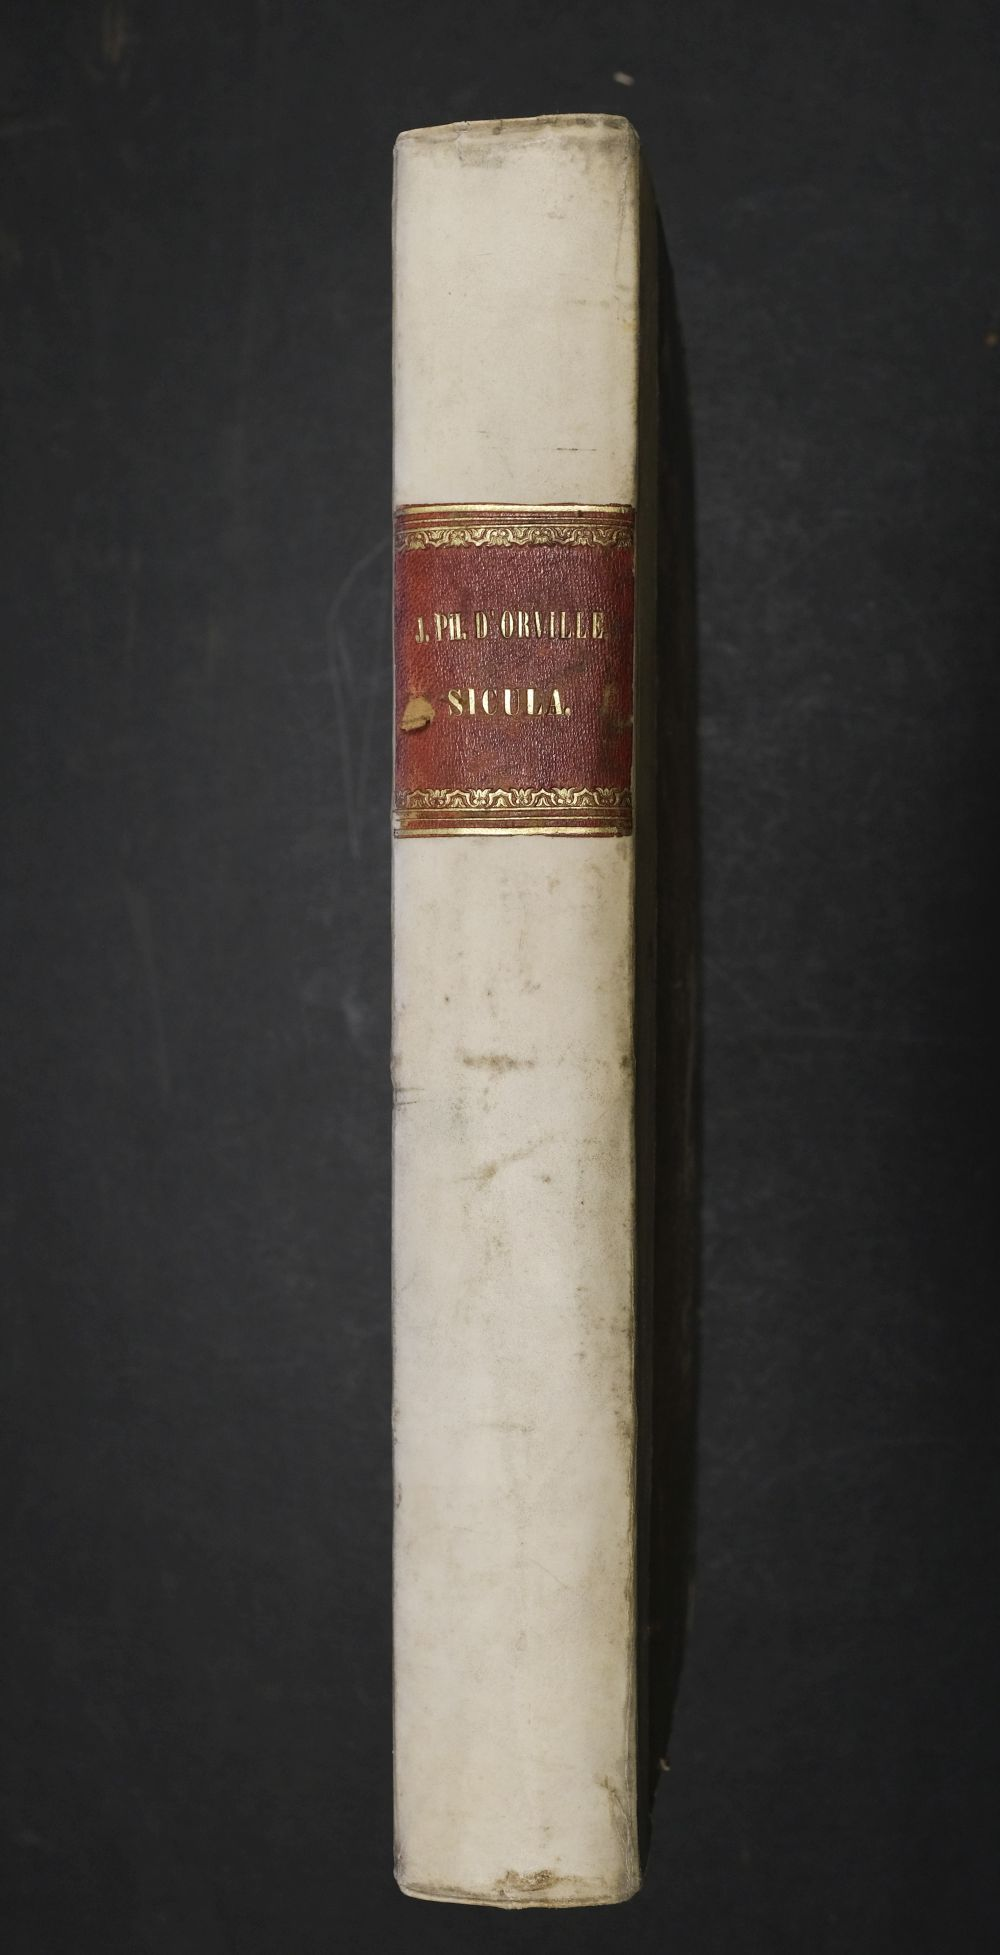 Orville (Jacques Phillipe d'). Sicula, 1764 - Image 3 of 8